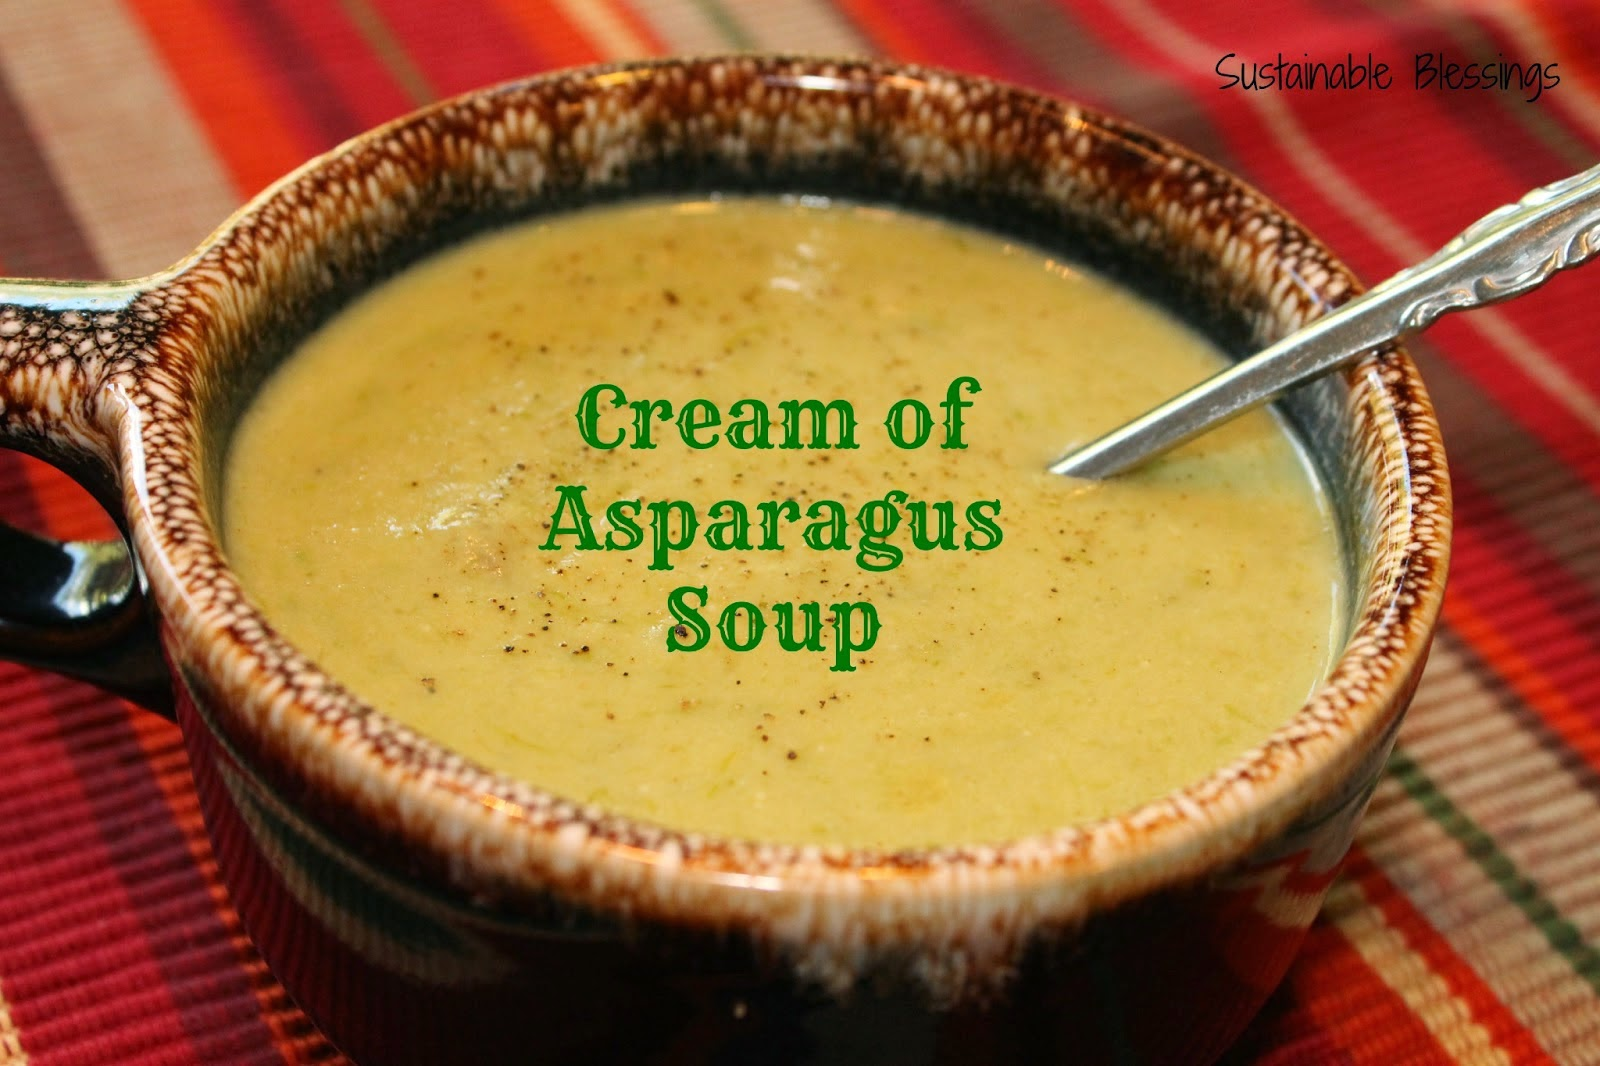 http://www.sustainableblessings.com/2013/07/cream-of-asparagus-soup.html